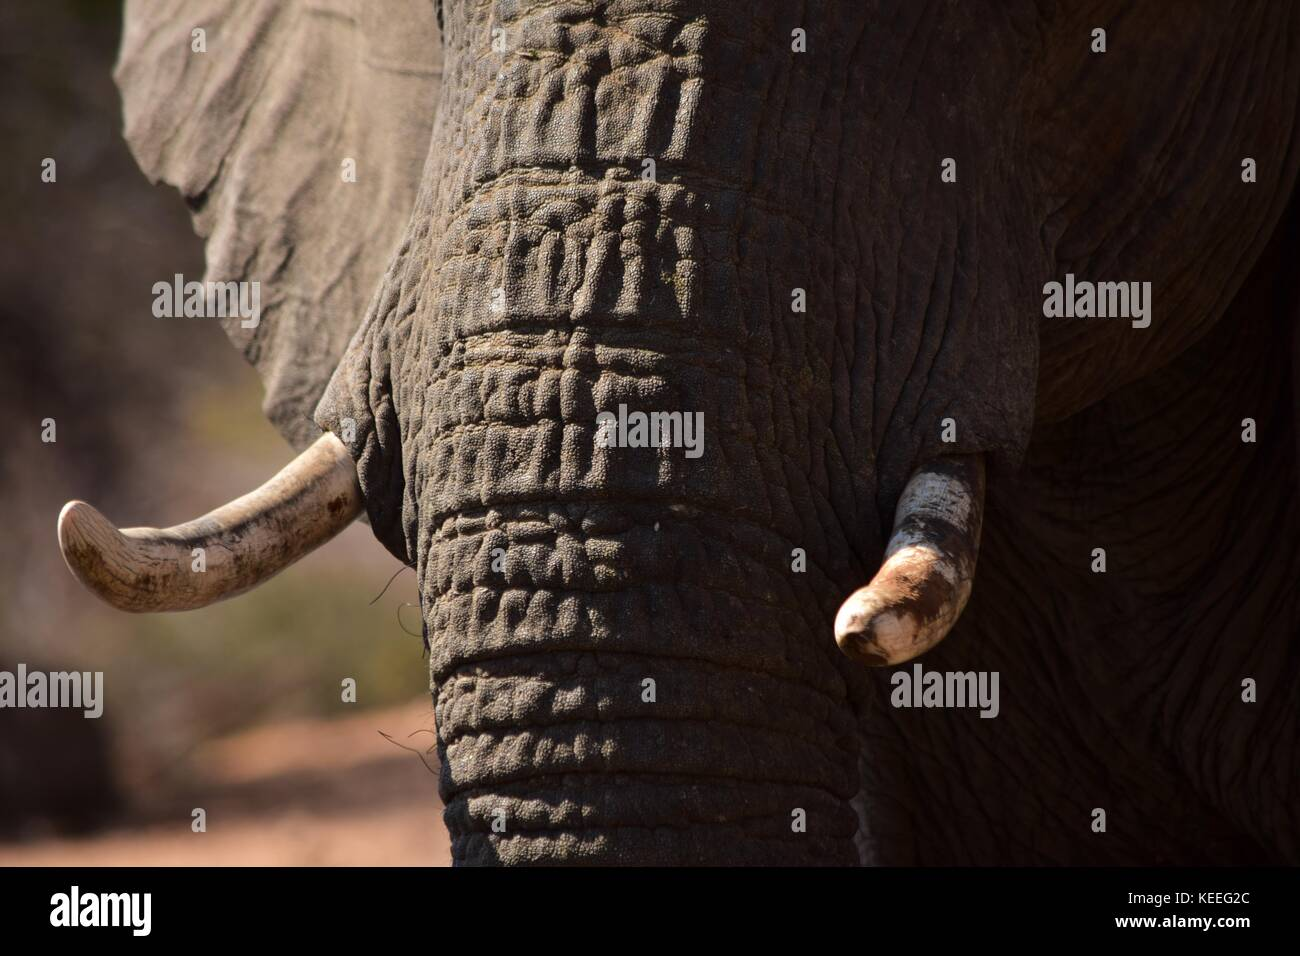 A detail photo of an African Elephant's tusks, poaching targets. Also visible the wrinkled grey skin of the - Stock Image